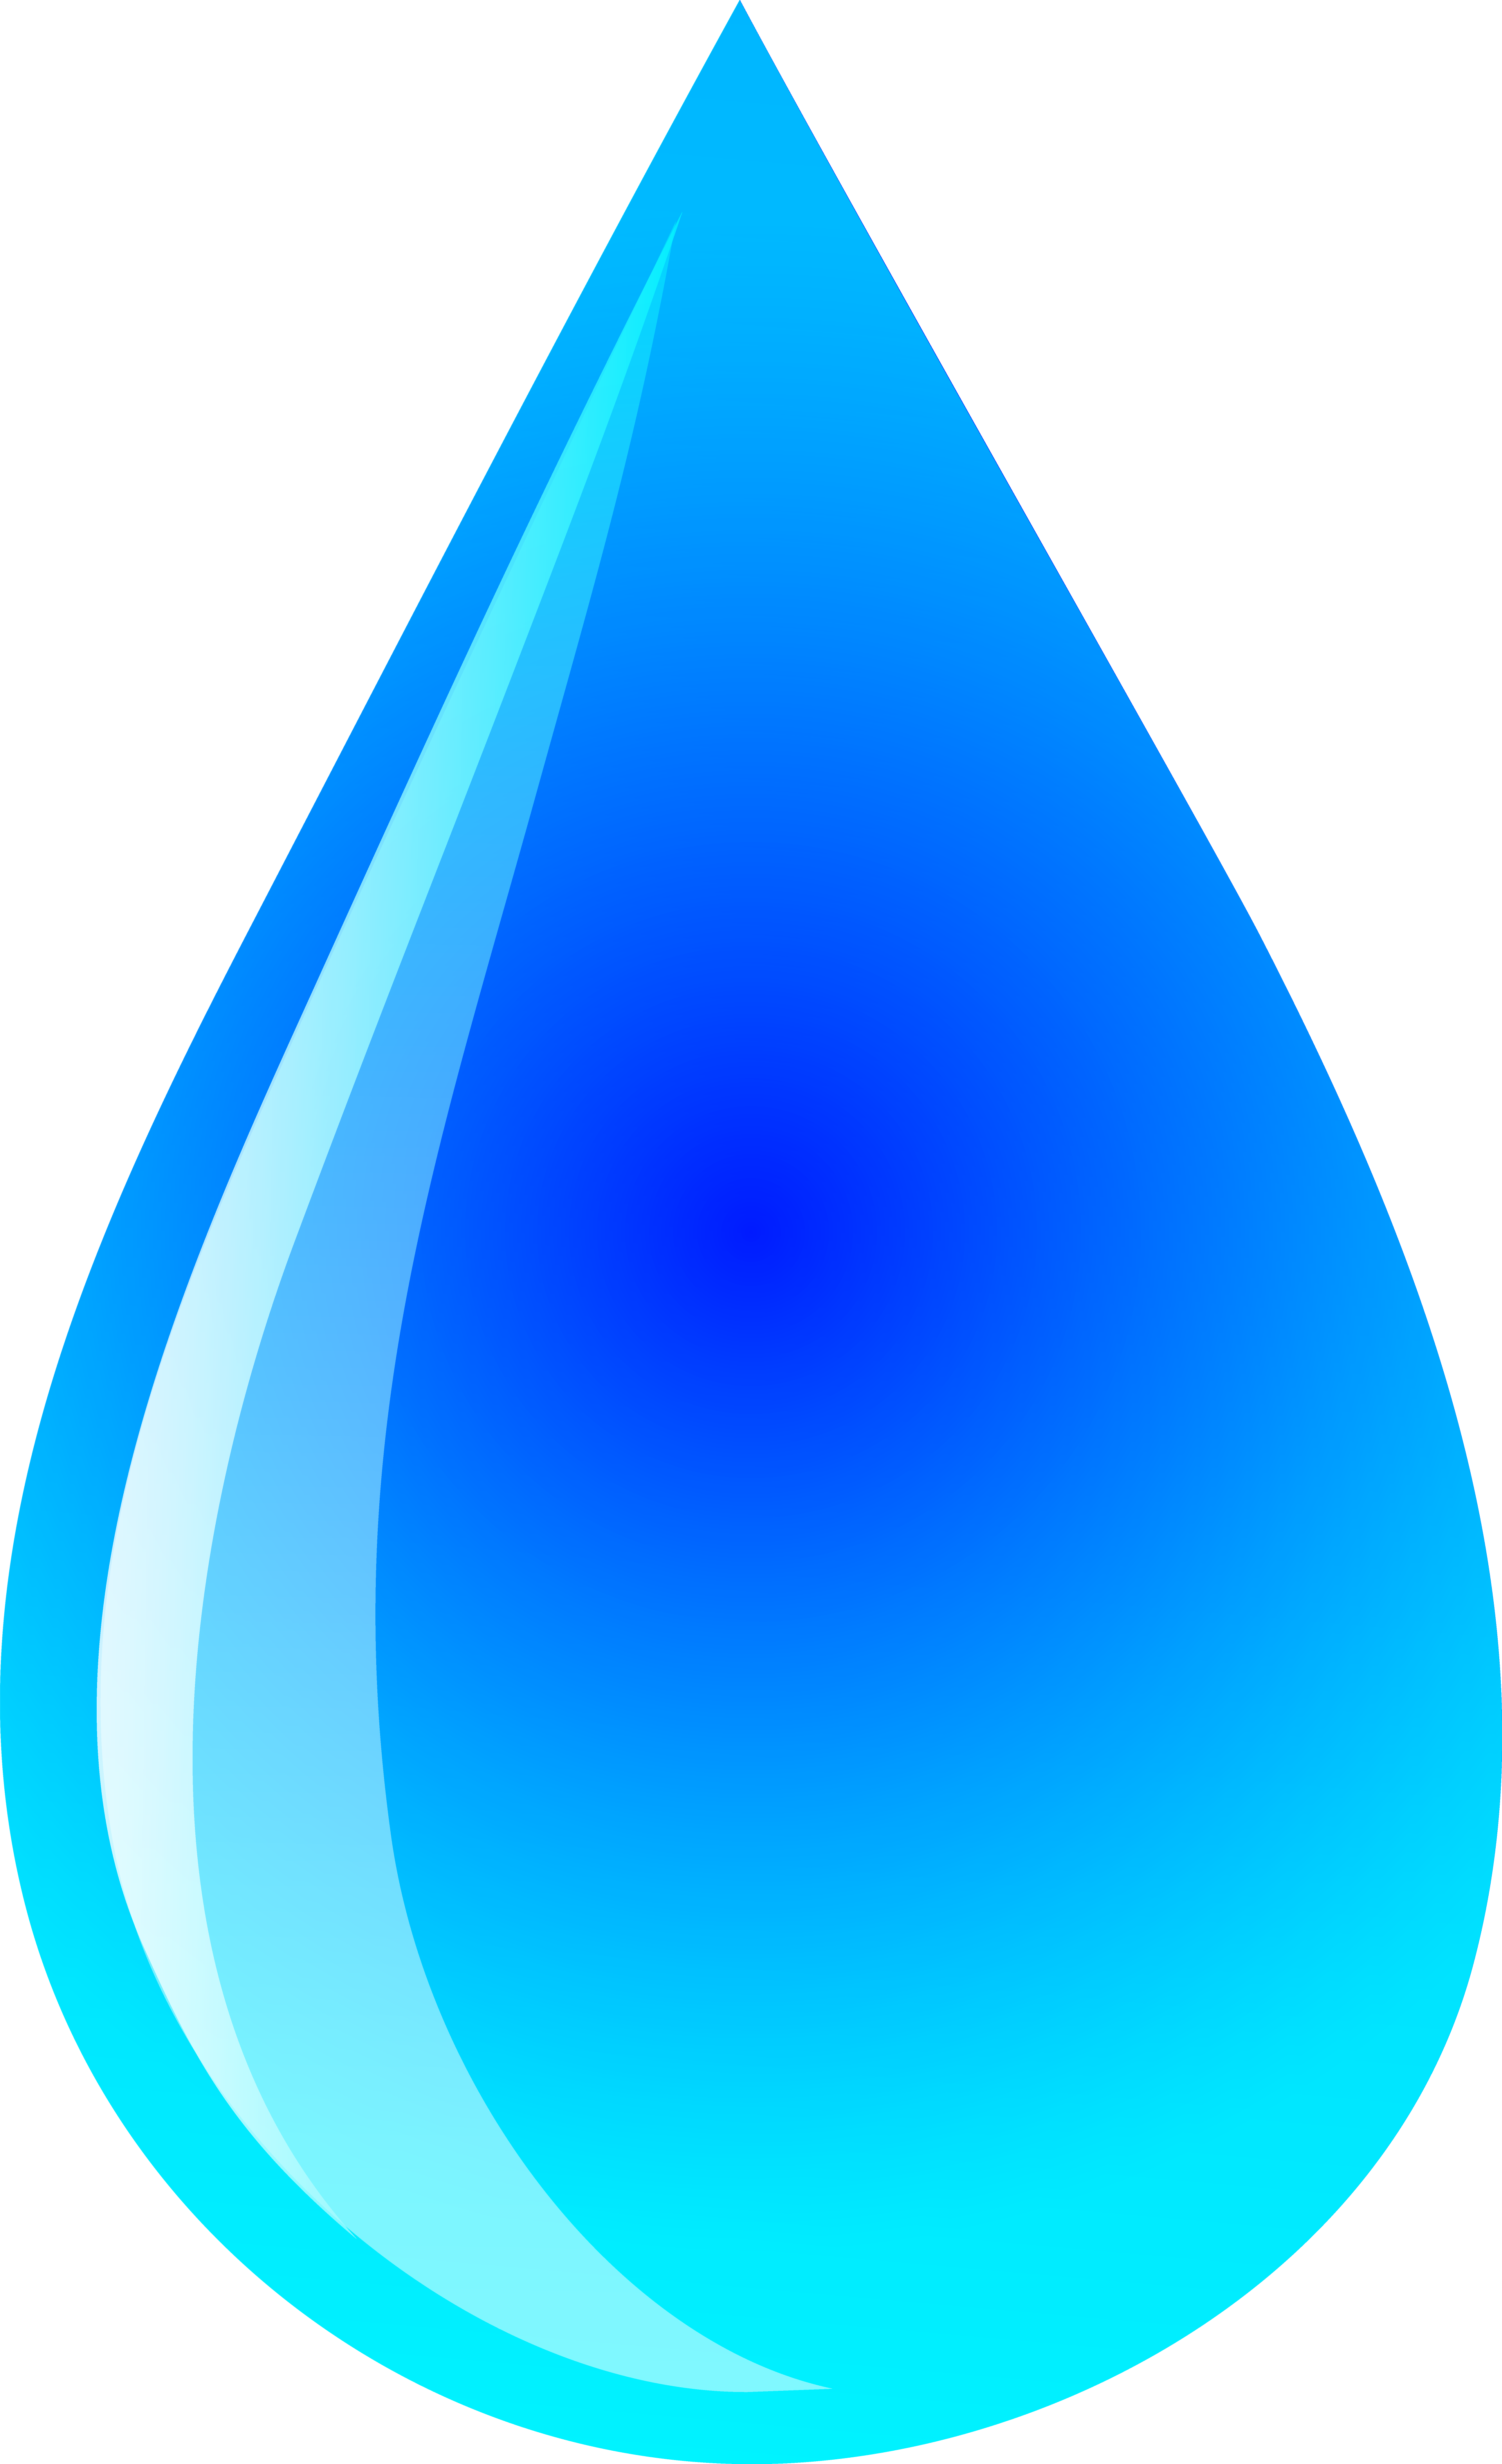 3837x6293 Water Clipart Png File